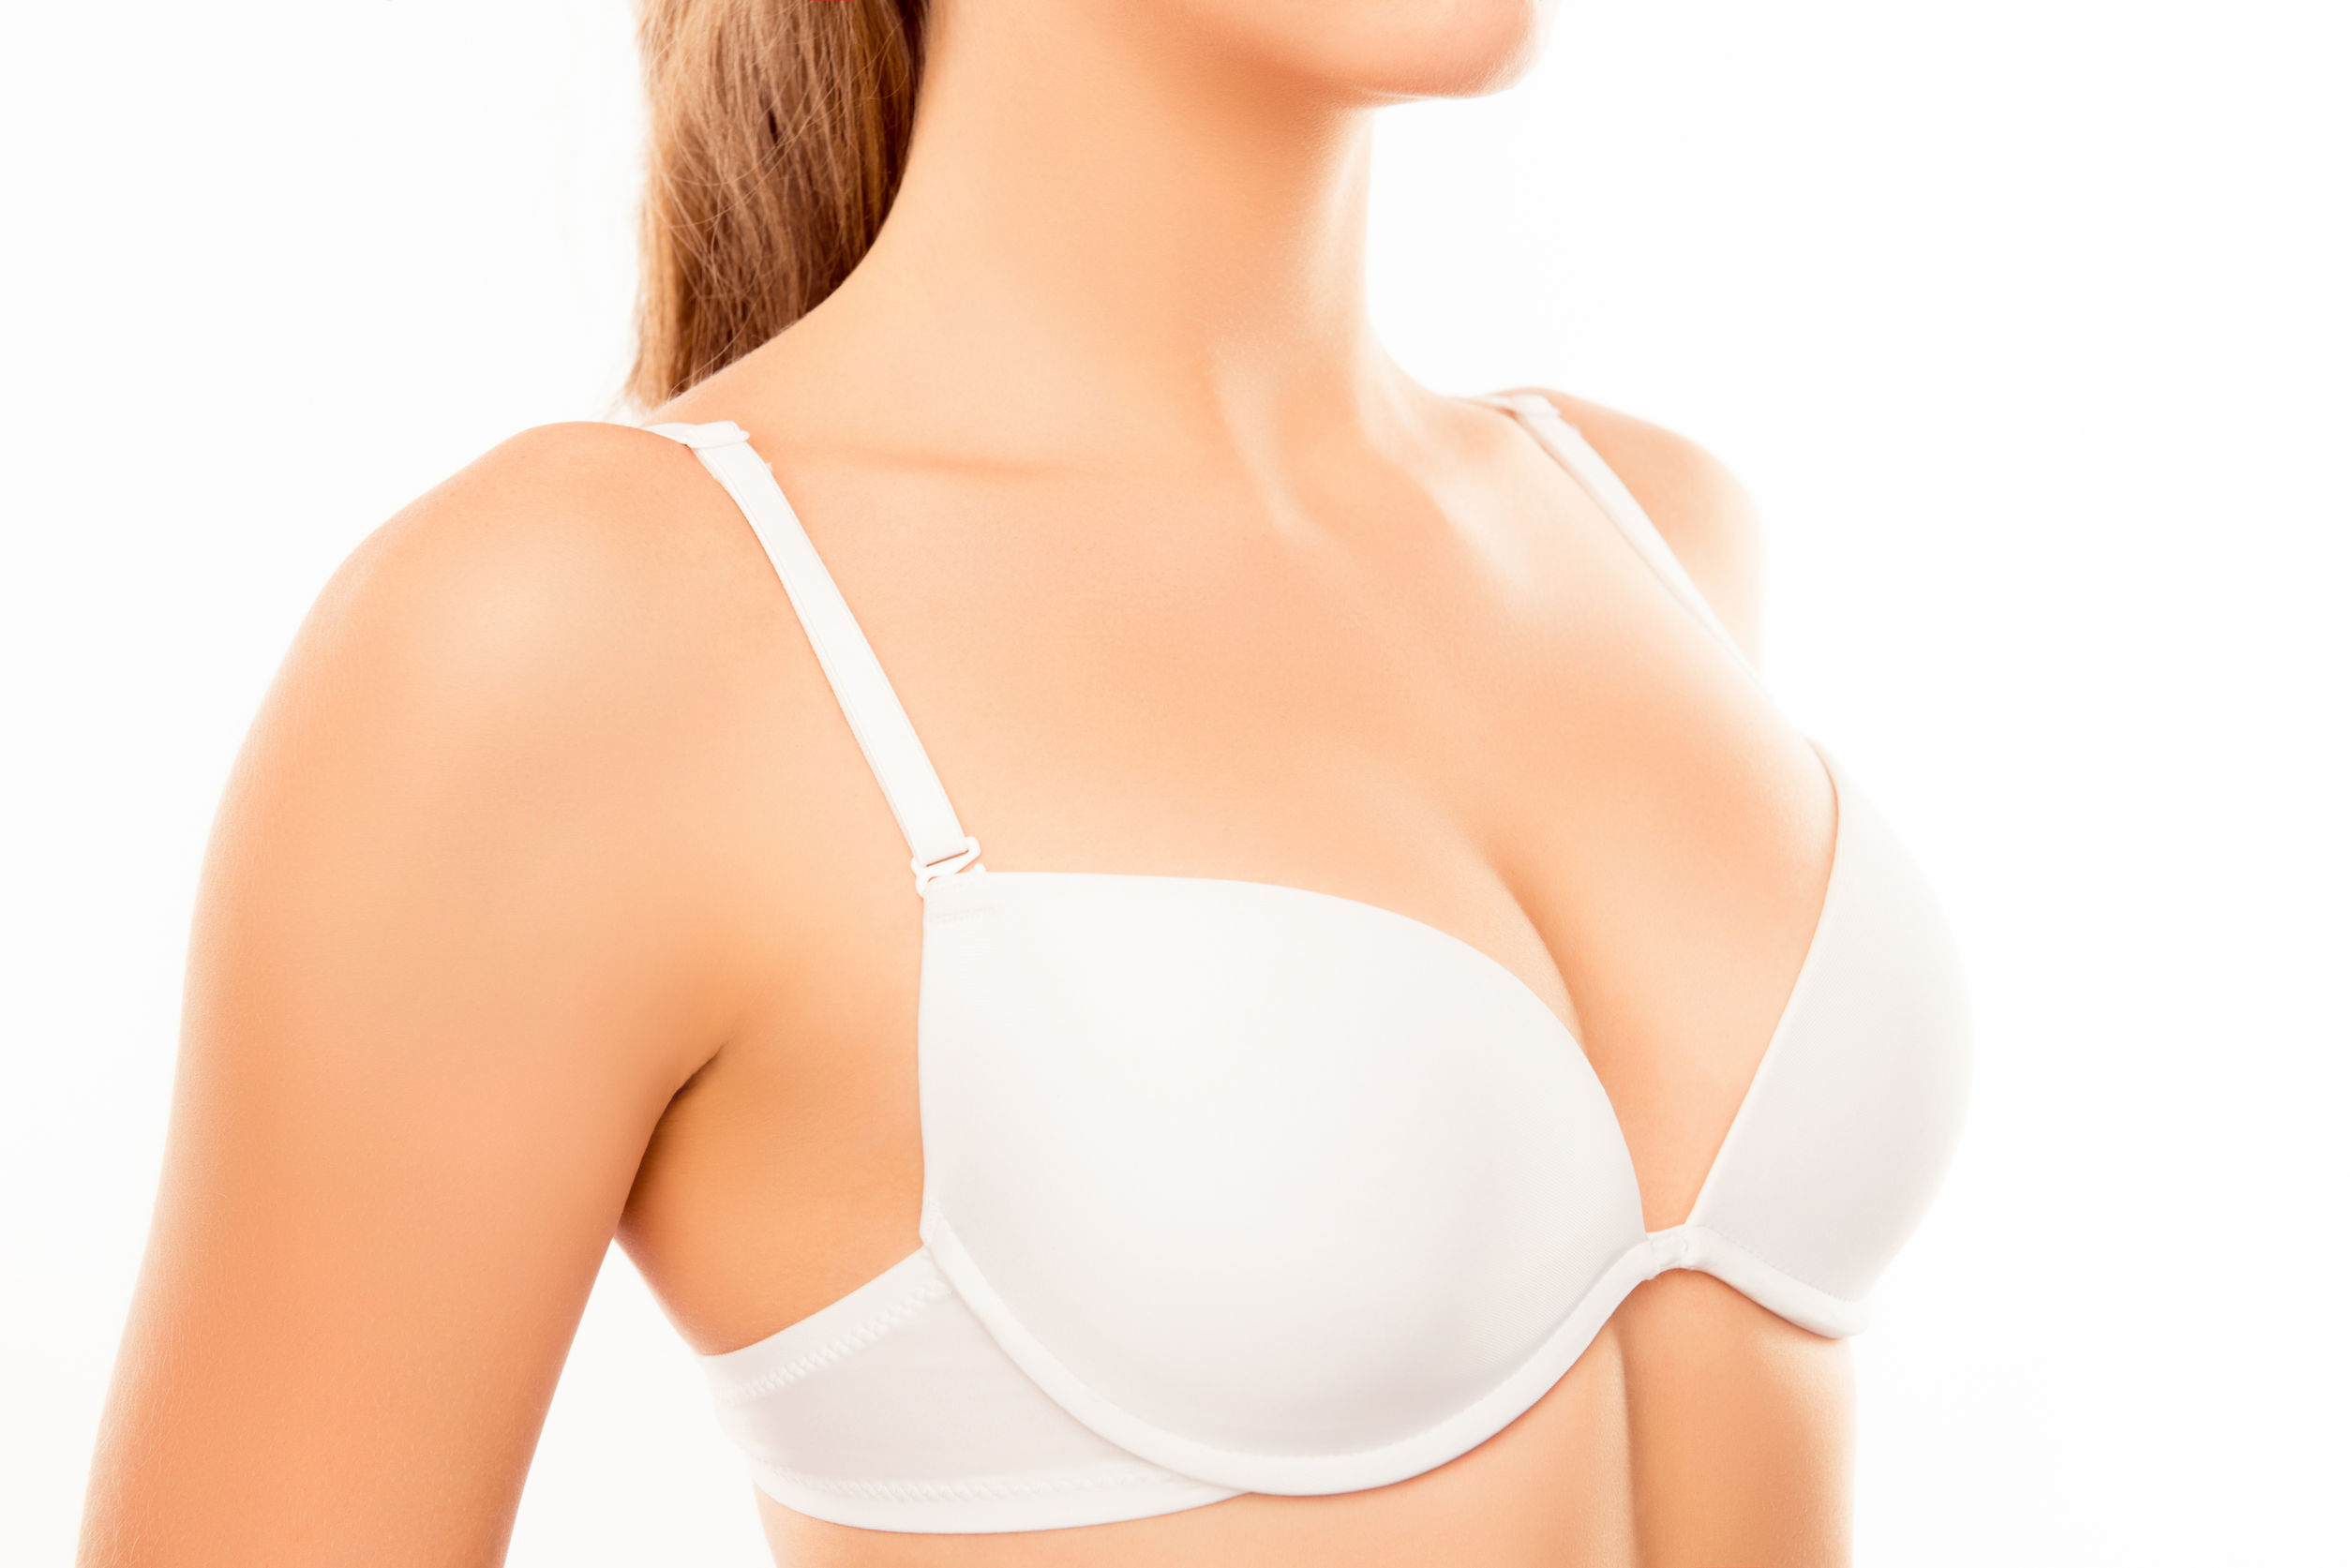 Choose the Rapid Recovery Breast Augmentation method with a board certified Plastic Surgeon - Top 5 Reasons for this method are described in this article by Dr. E. Ronald Finger.